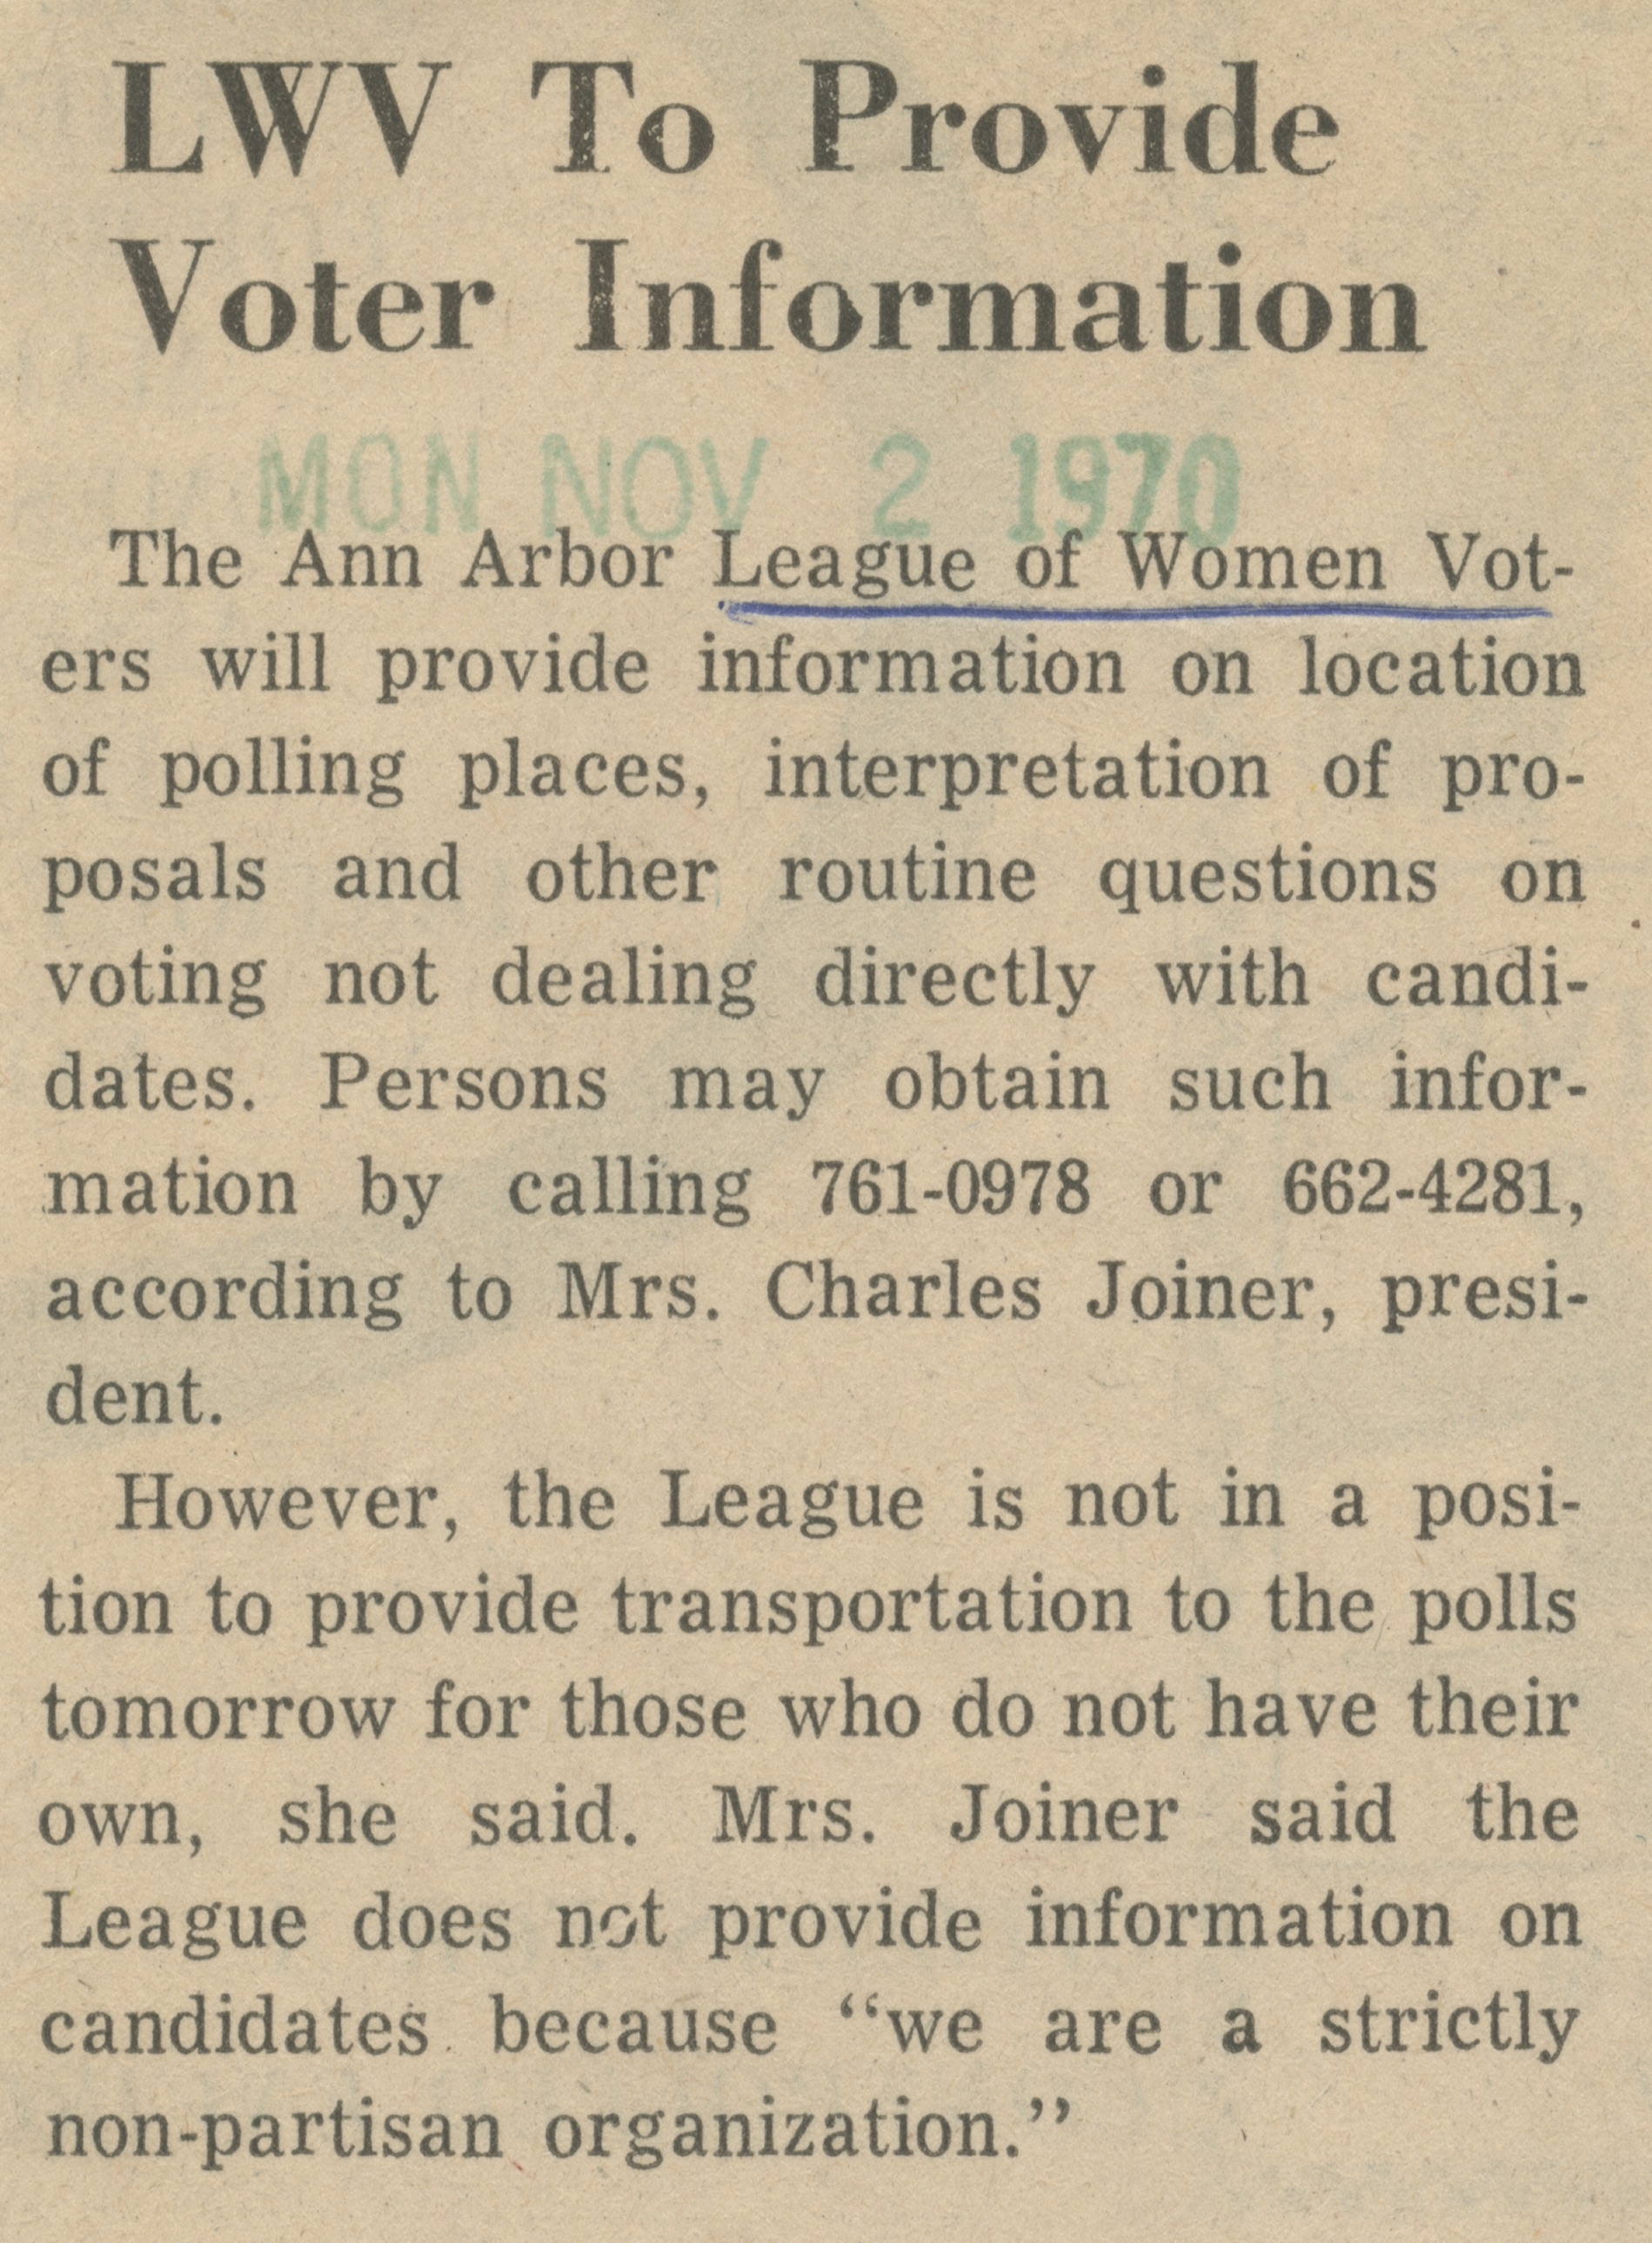 LWV To Provide Voter Information image